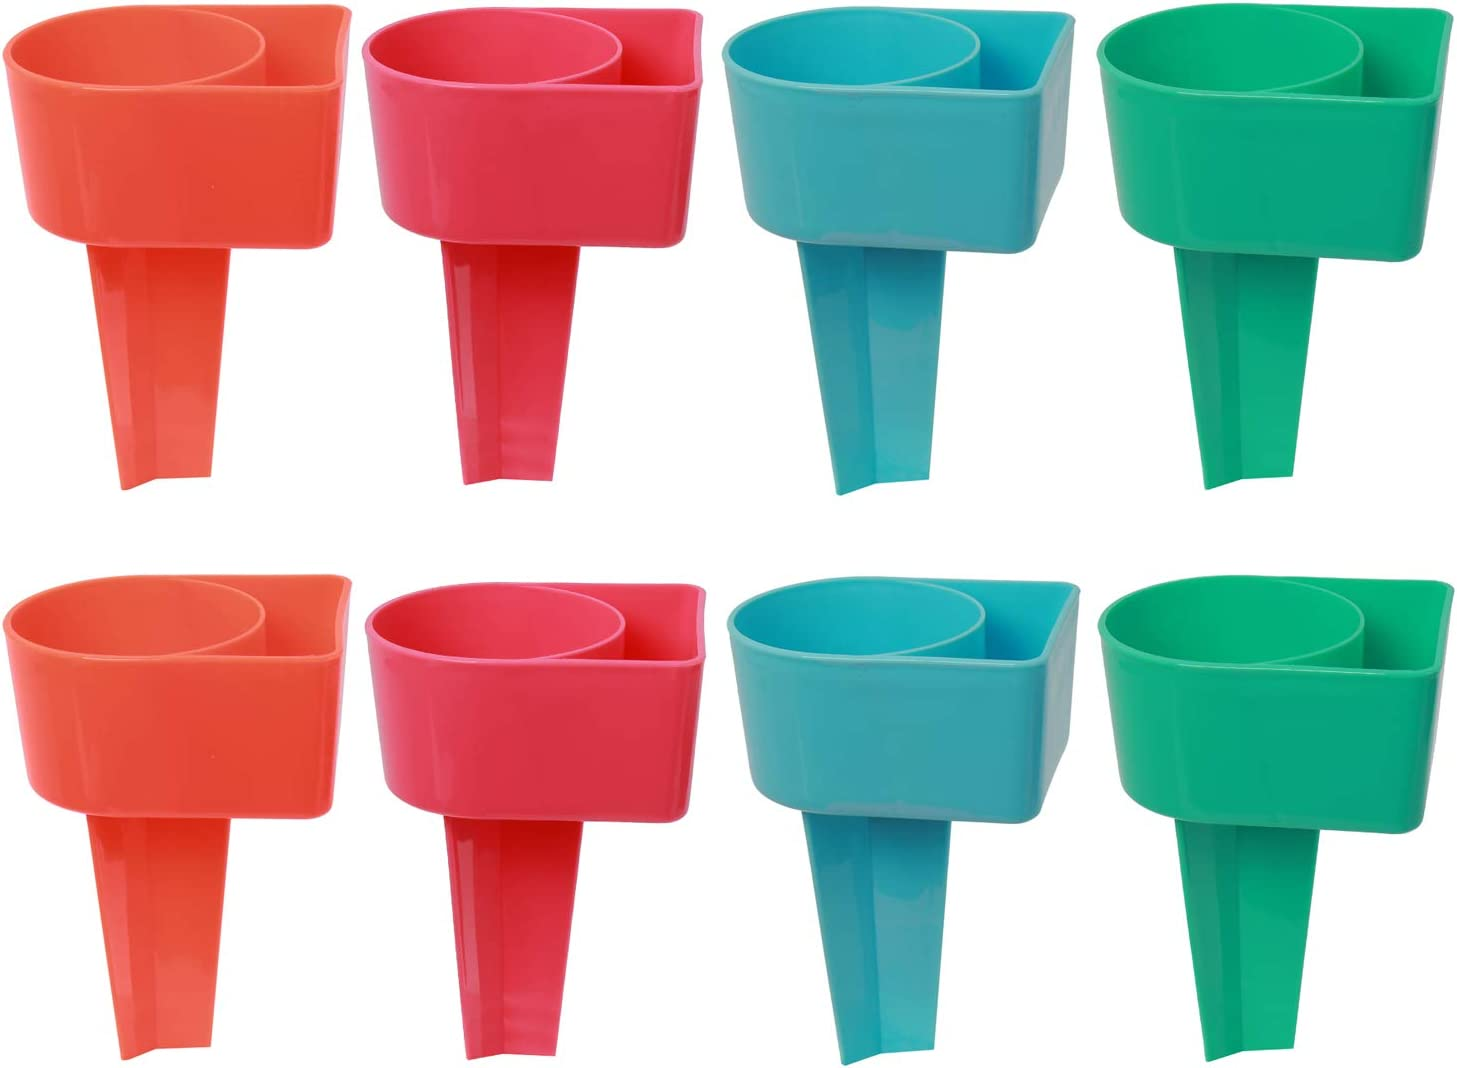 NovelBee 8 Pack of Plastic Multifunction Beverage Sand Cup Holders for Vacation Beach Accessory,Color:Red,Pink,Blue,Green